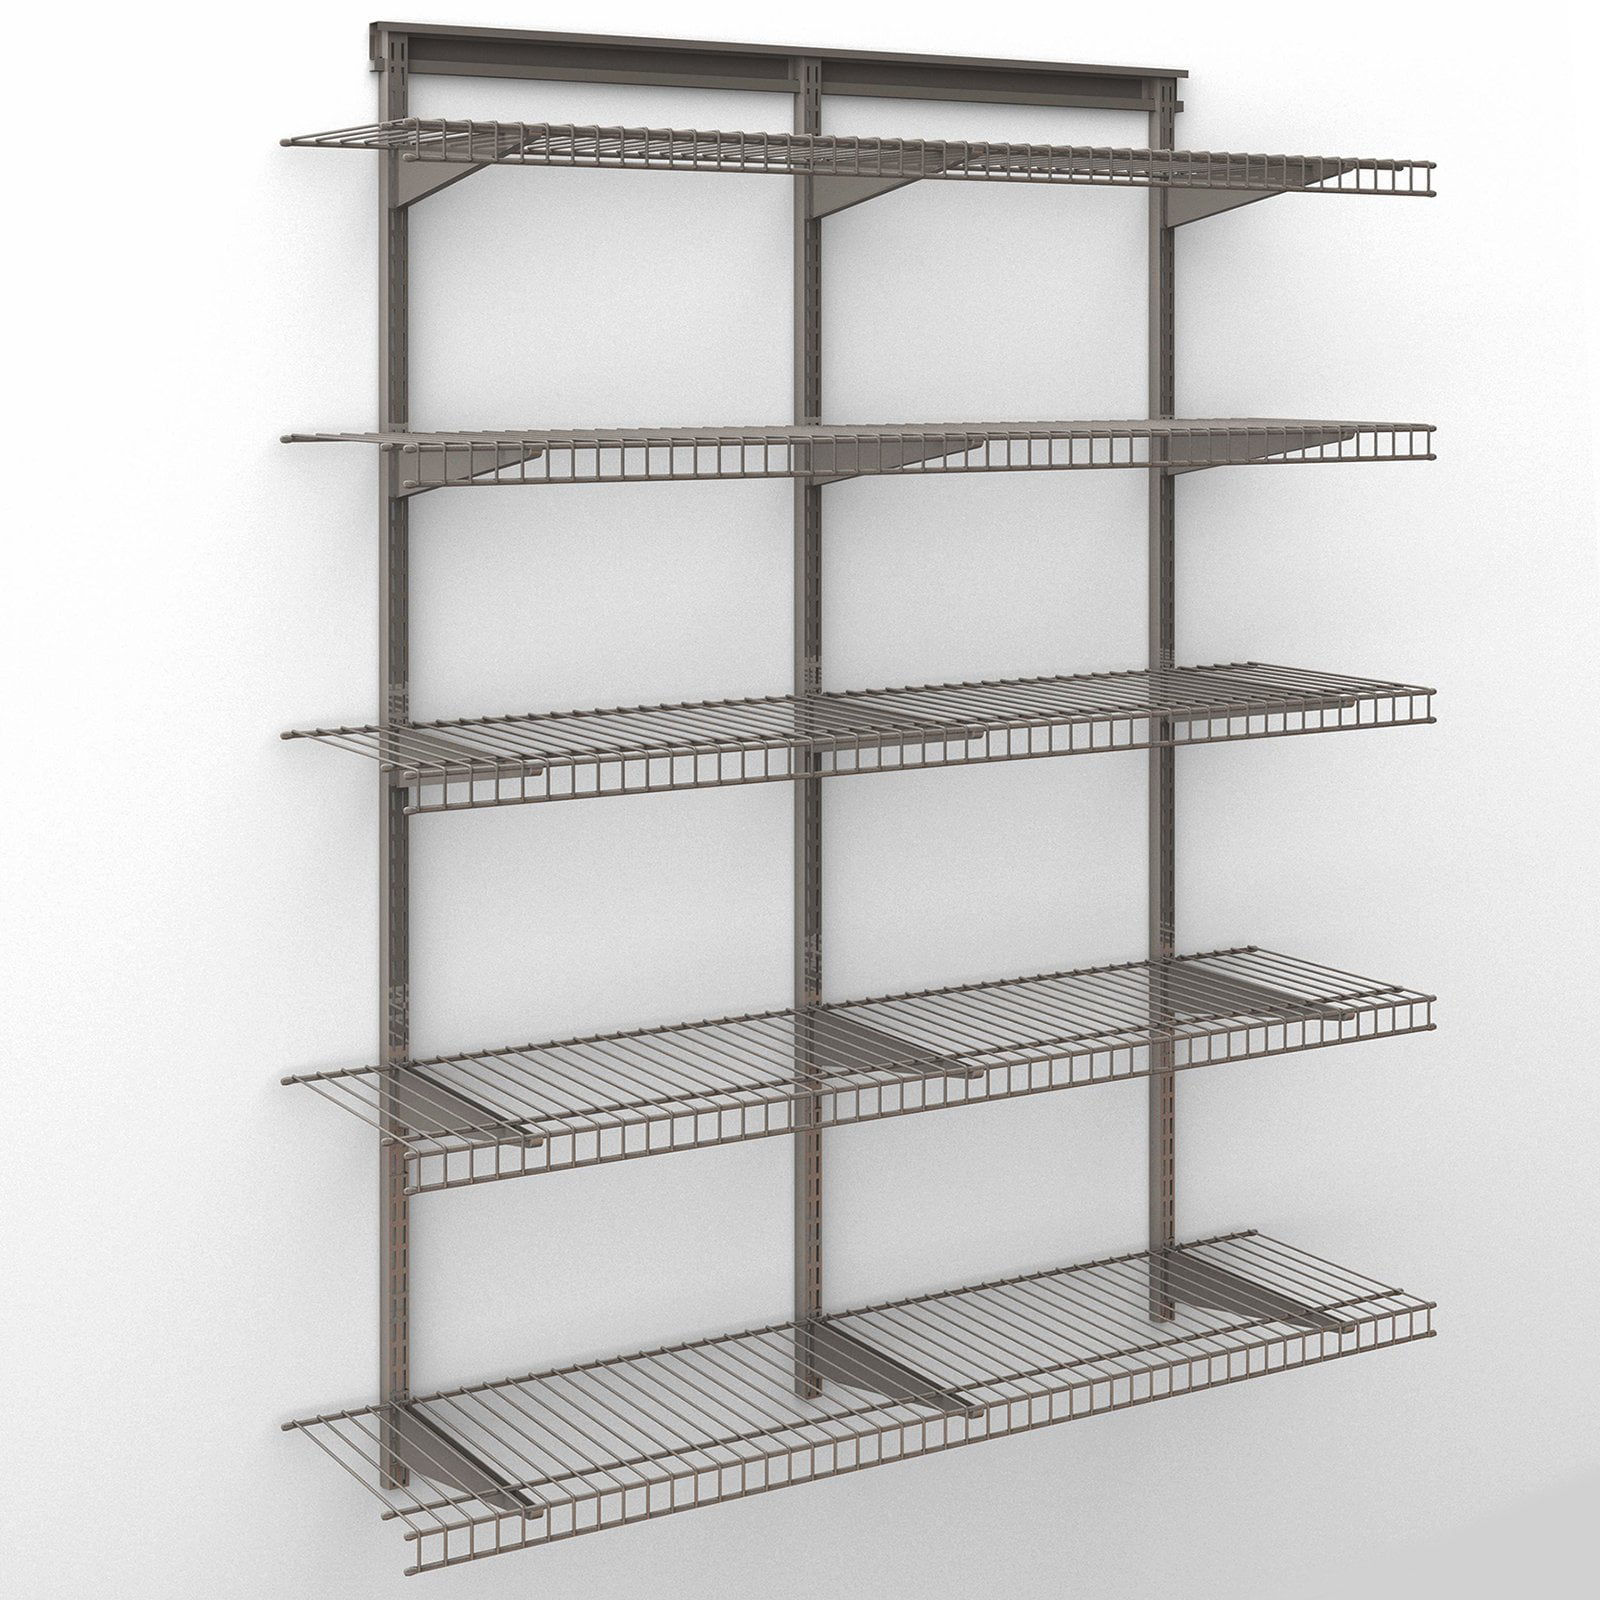 Marvelous ClosetMaid ShelfTrack 4 Ft. Wire Shelf Kit   Walmart.com